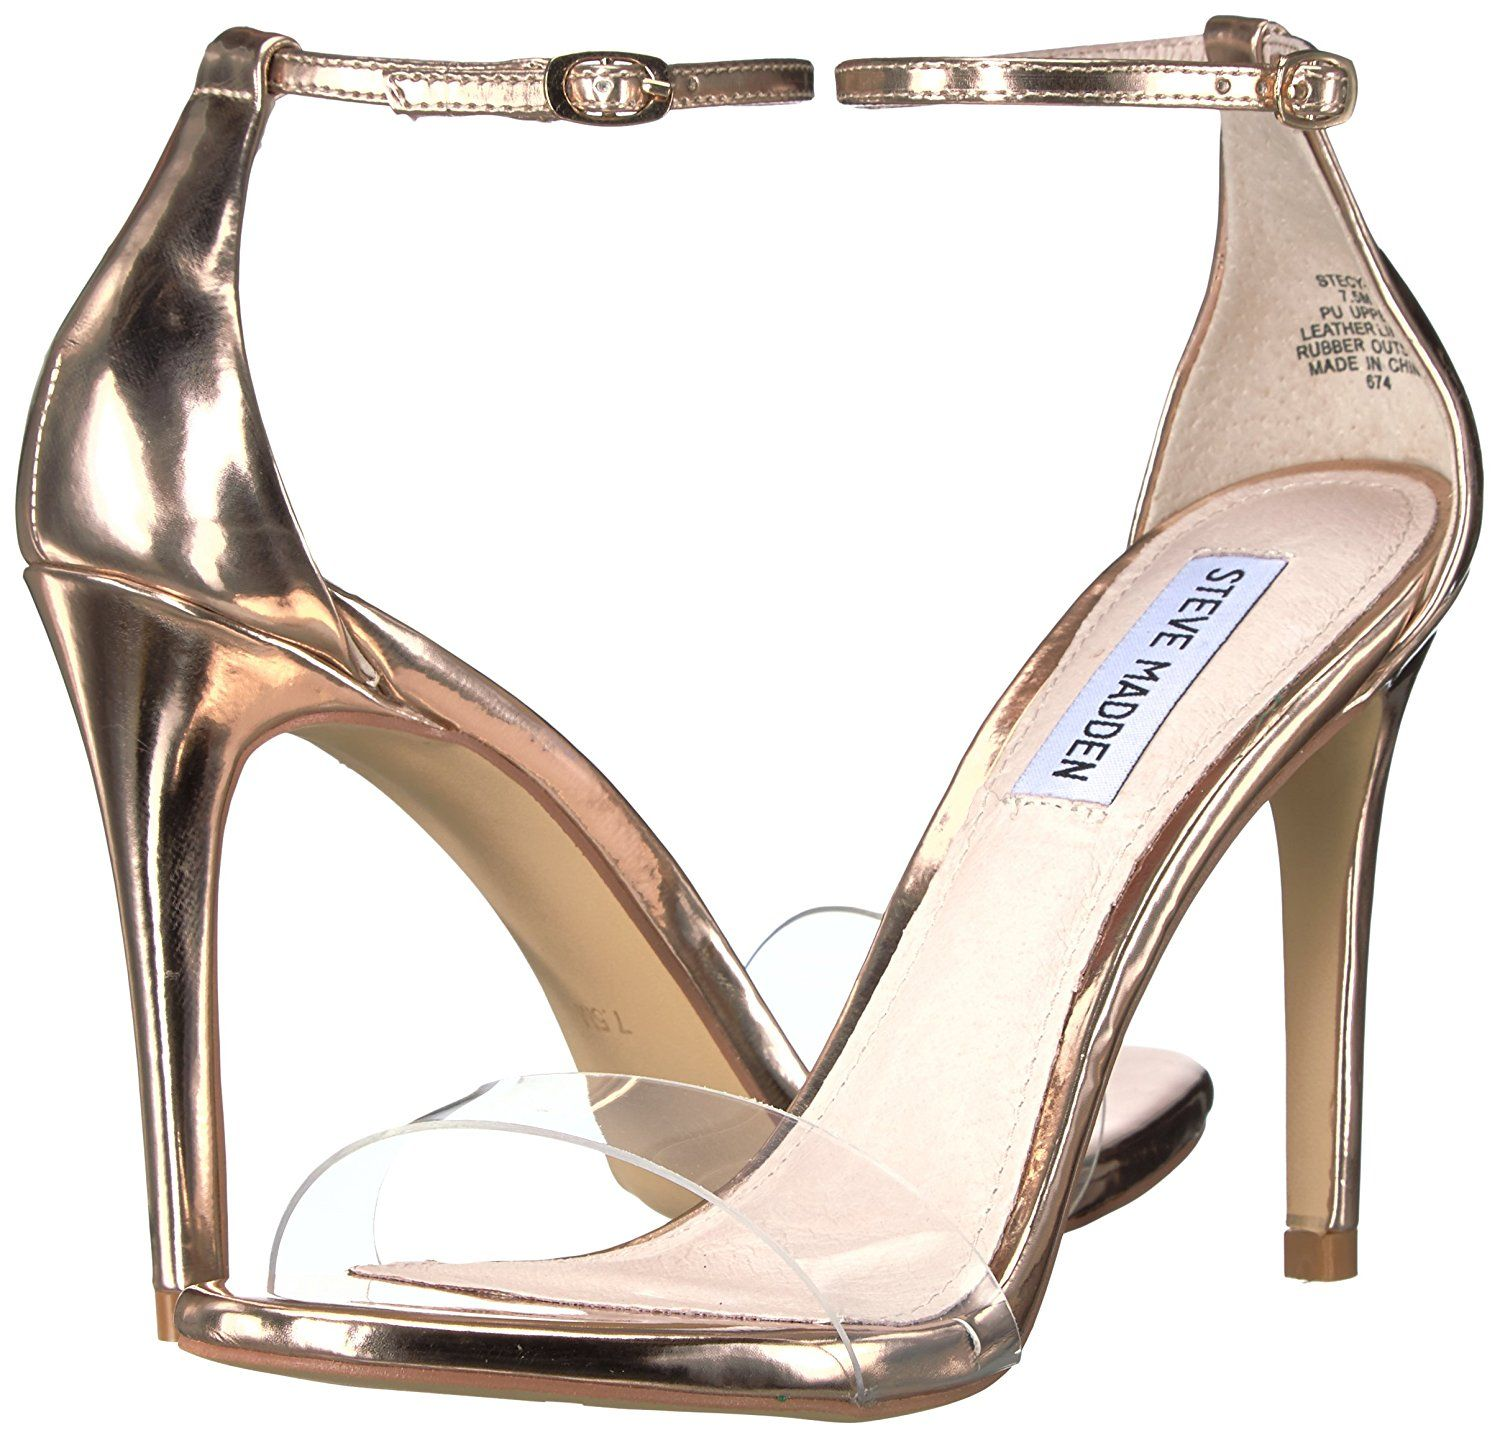 49c6953c938 Steve Madden Women s Stecy-c Dress Sandal     See this great product. (This  is an affiliate link)  shoeoftheday